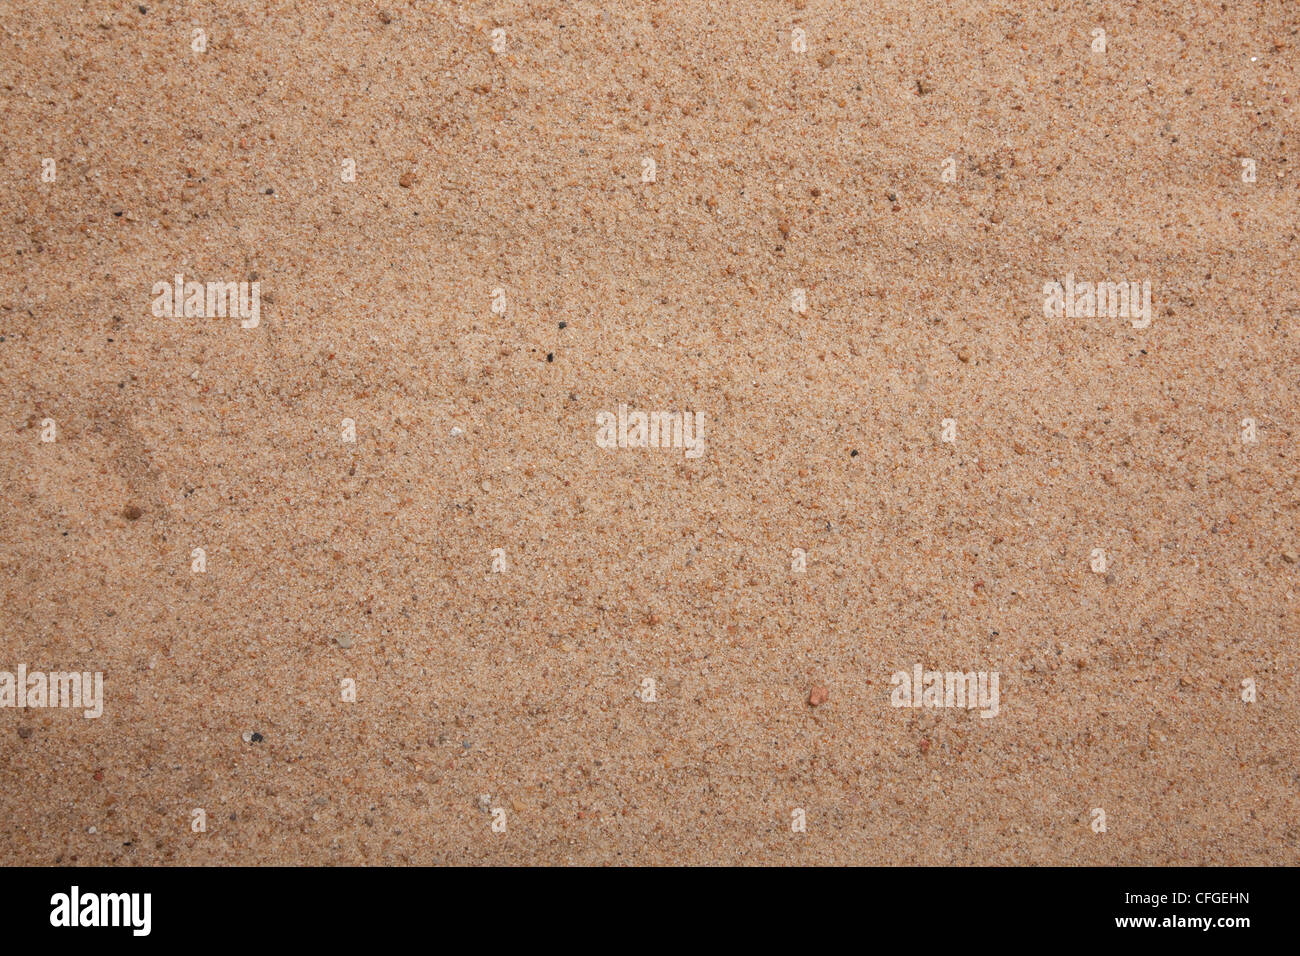 A Background made of sand - Stock Image